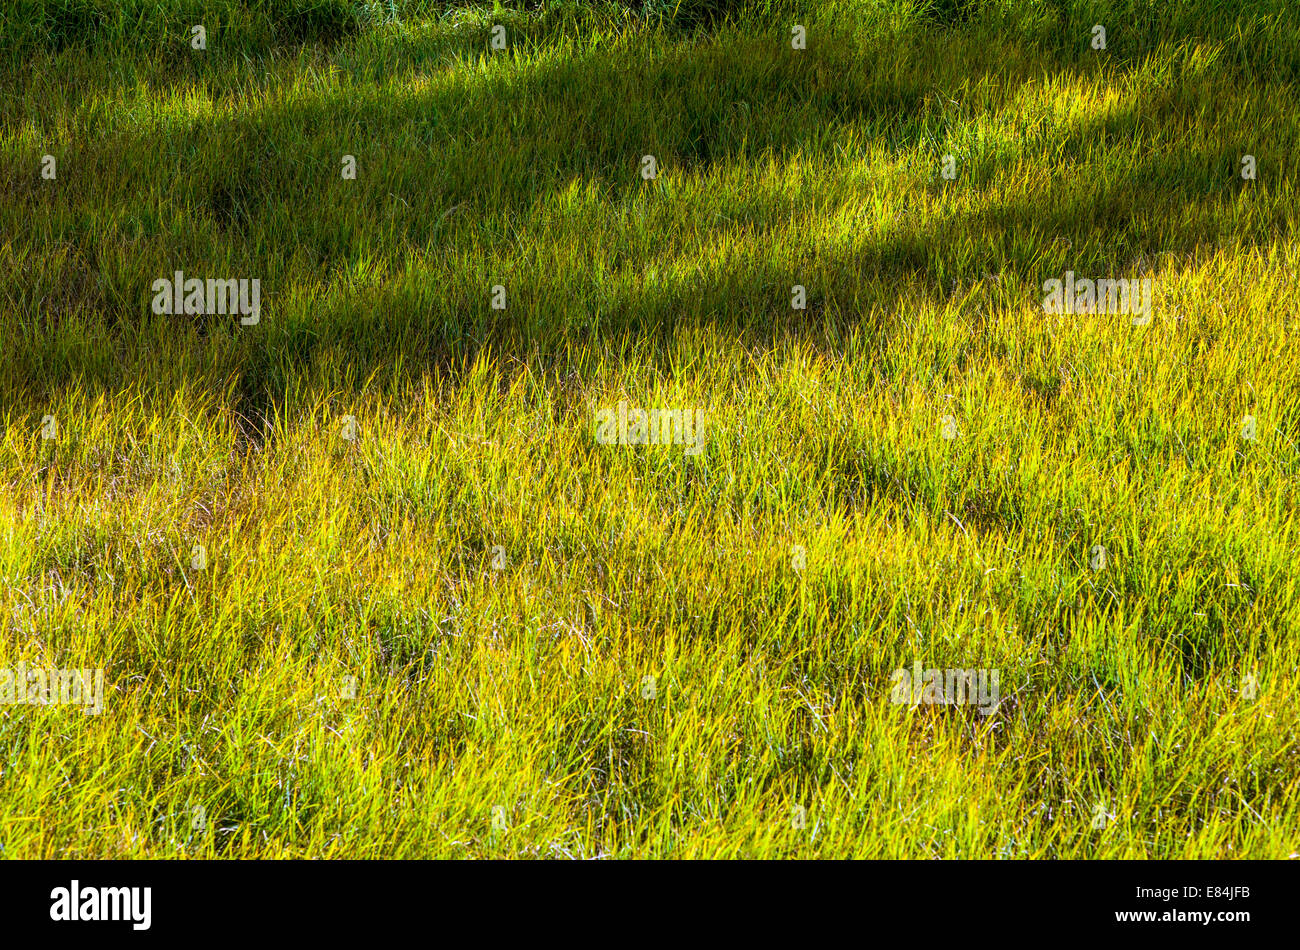 Lush pasture grasses along the Arkansas River, Rocky Mountains beyond, Central Colorado, USA - Stock Image